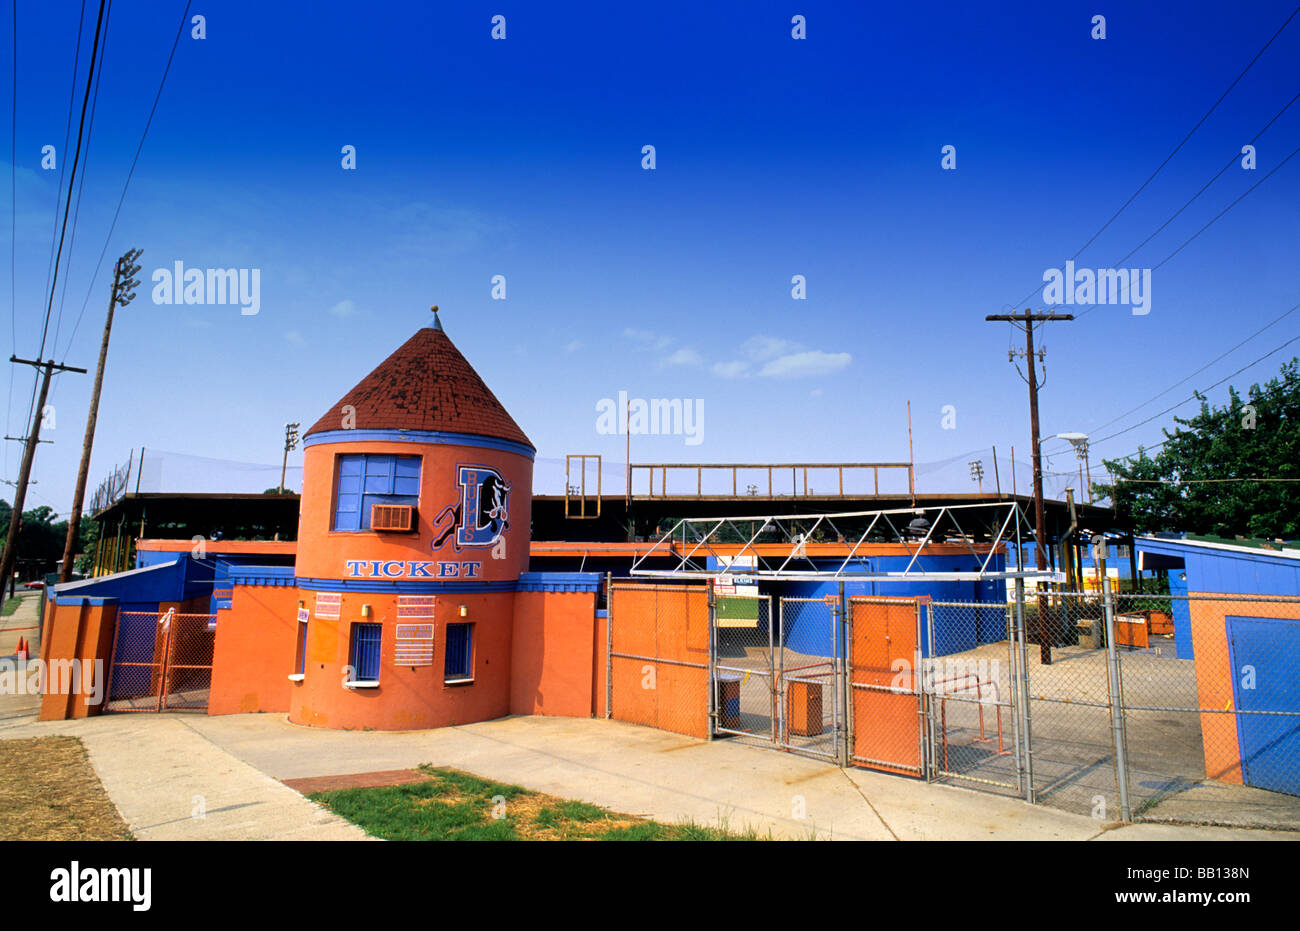 Duke University in Durham North Carolina USA famous Bull Durham Stadium - Stock Image